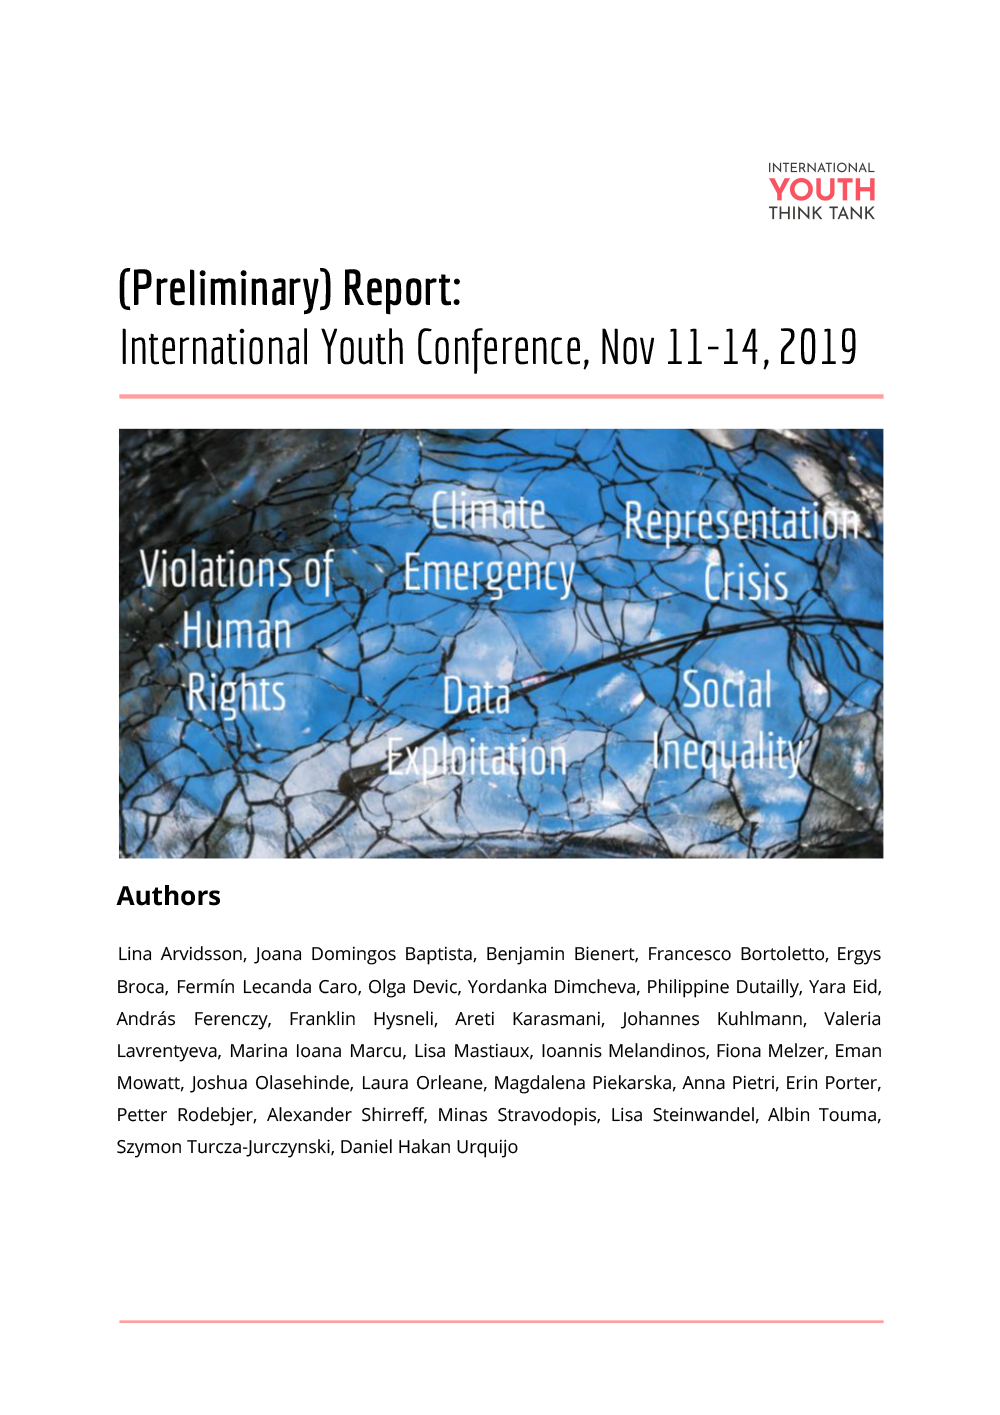 IYC 2019 Preliminary Report